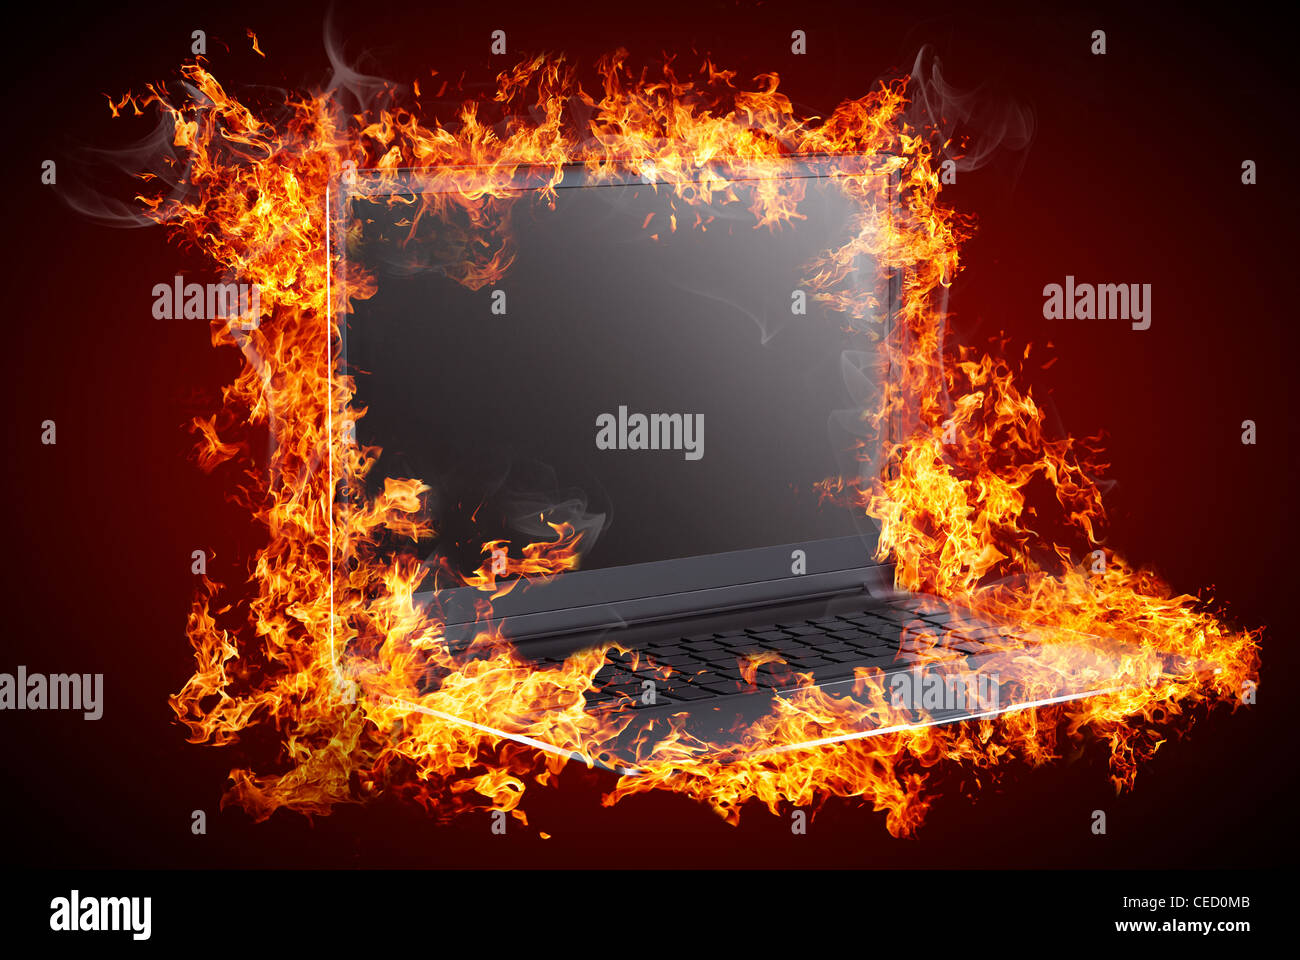 Computer in fire - Stock Image